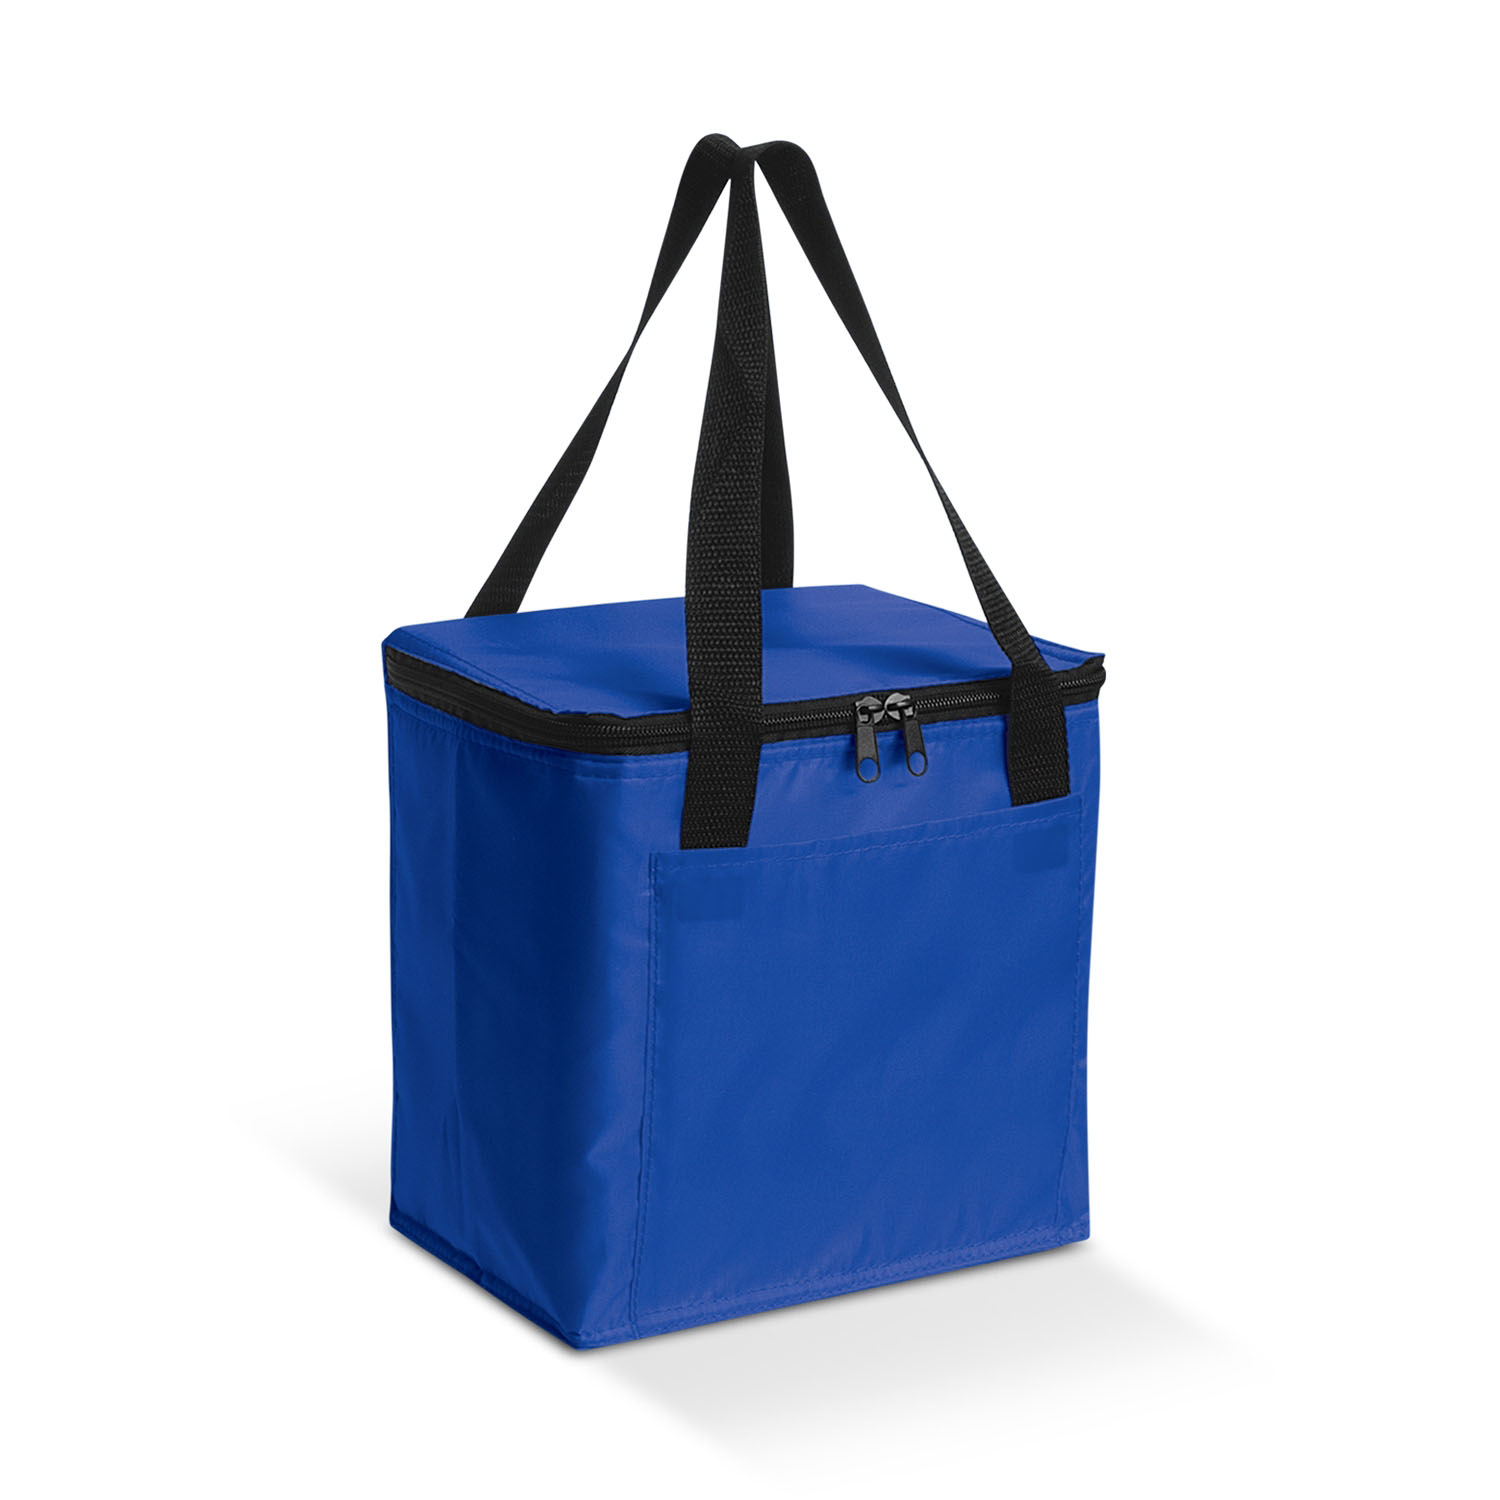 Buy Online Dark Blue Siberia Cooler Bags in Australia